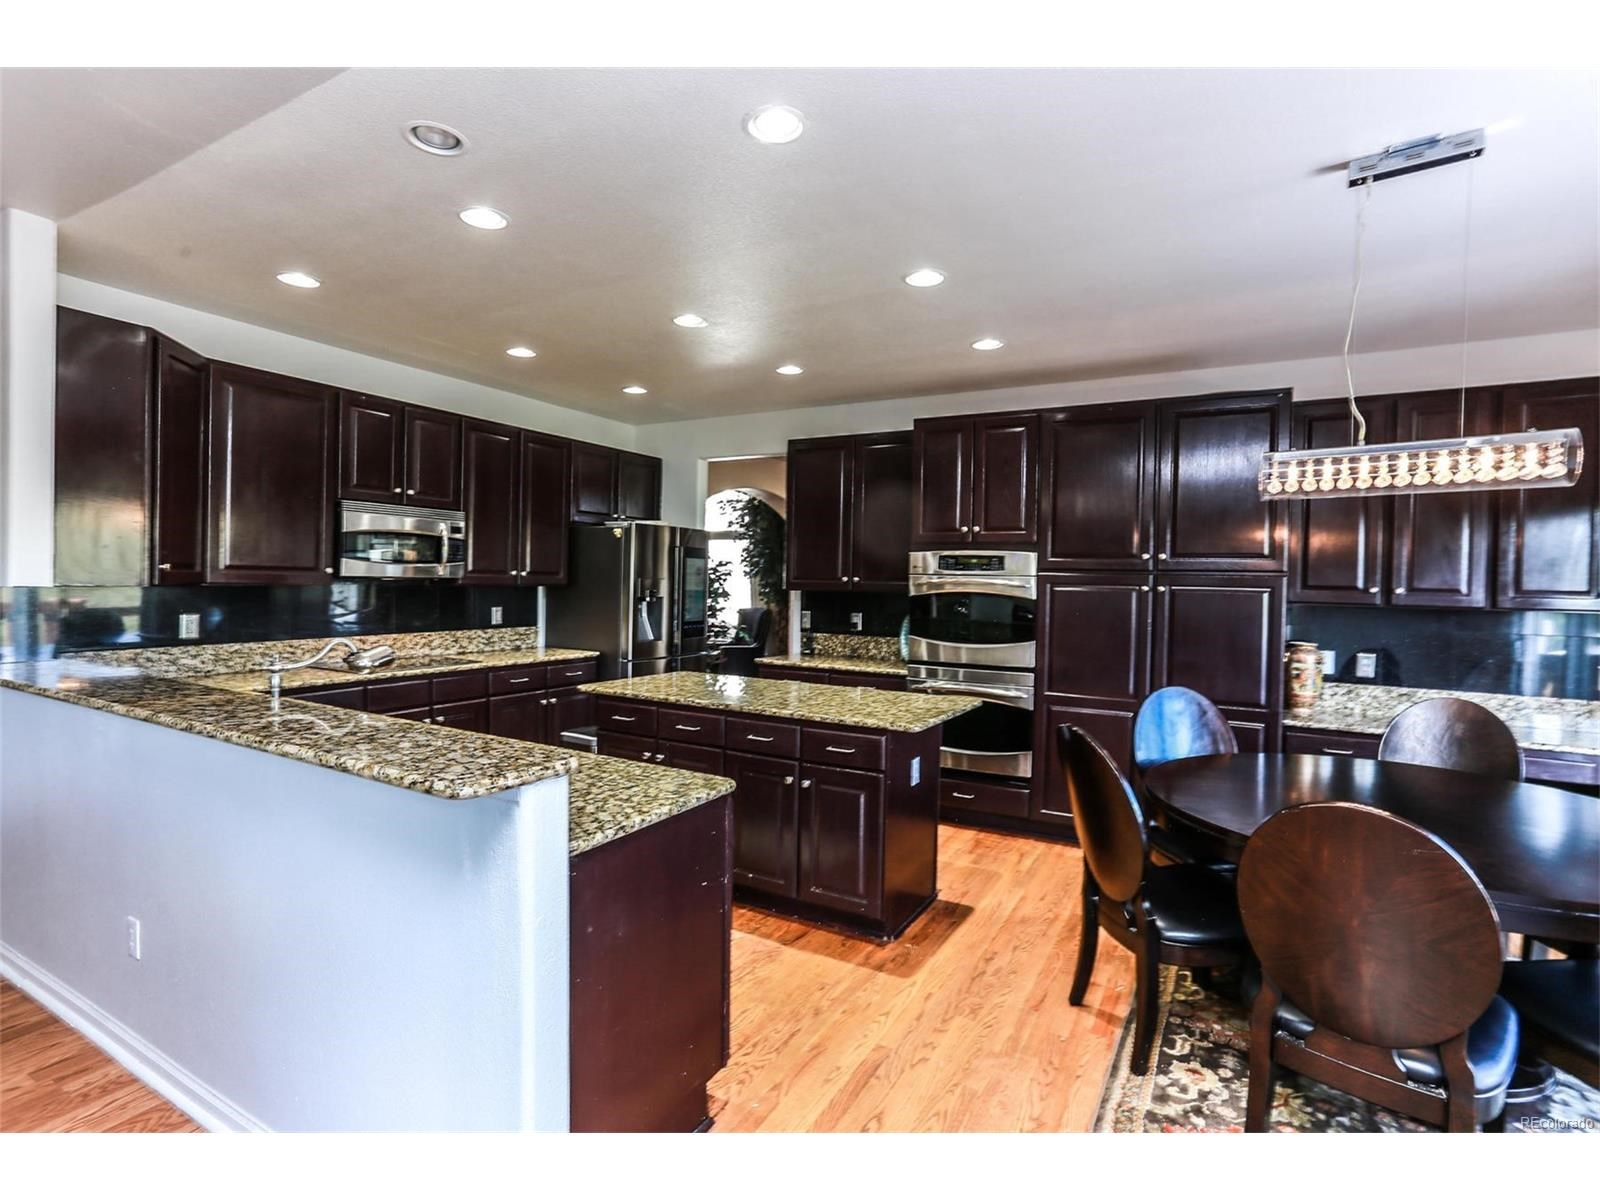 MLS# 7533509 - 1 - 10274  Nottingham Drive, Parker, CO 80134